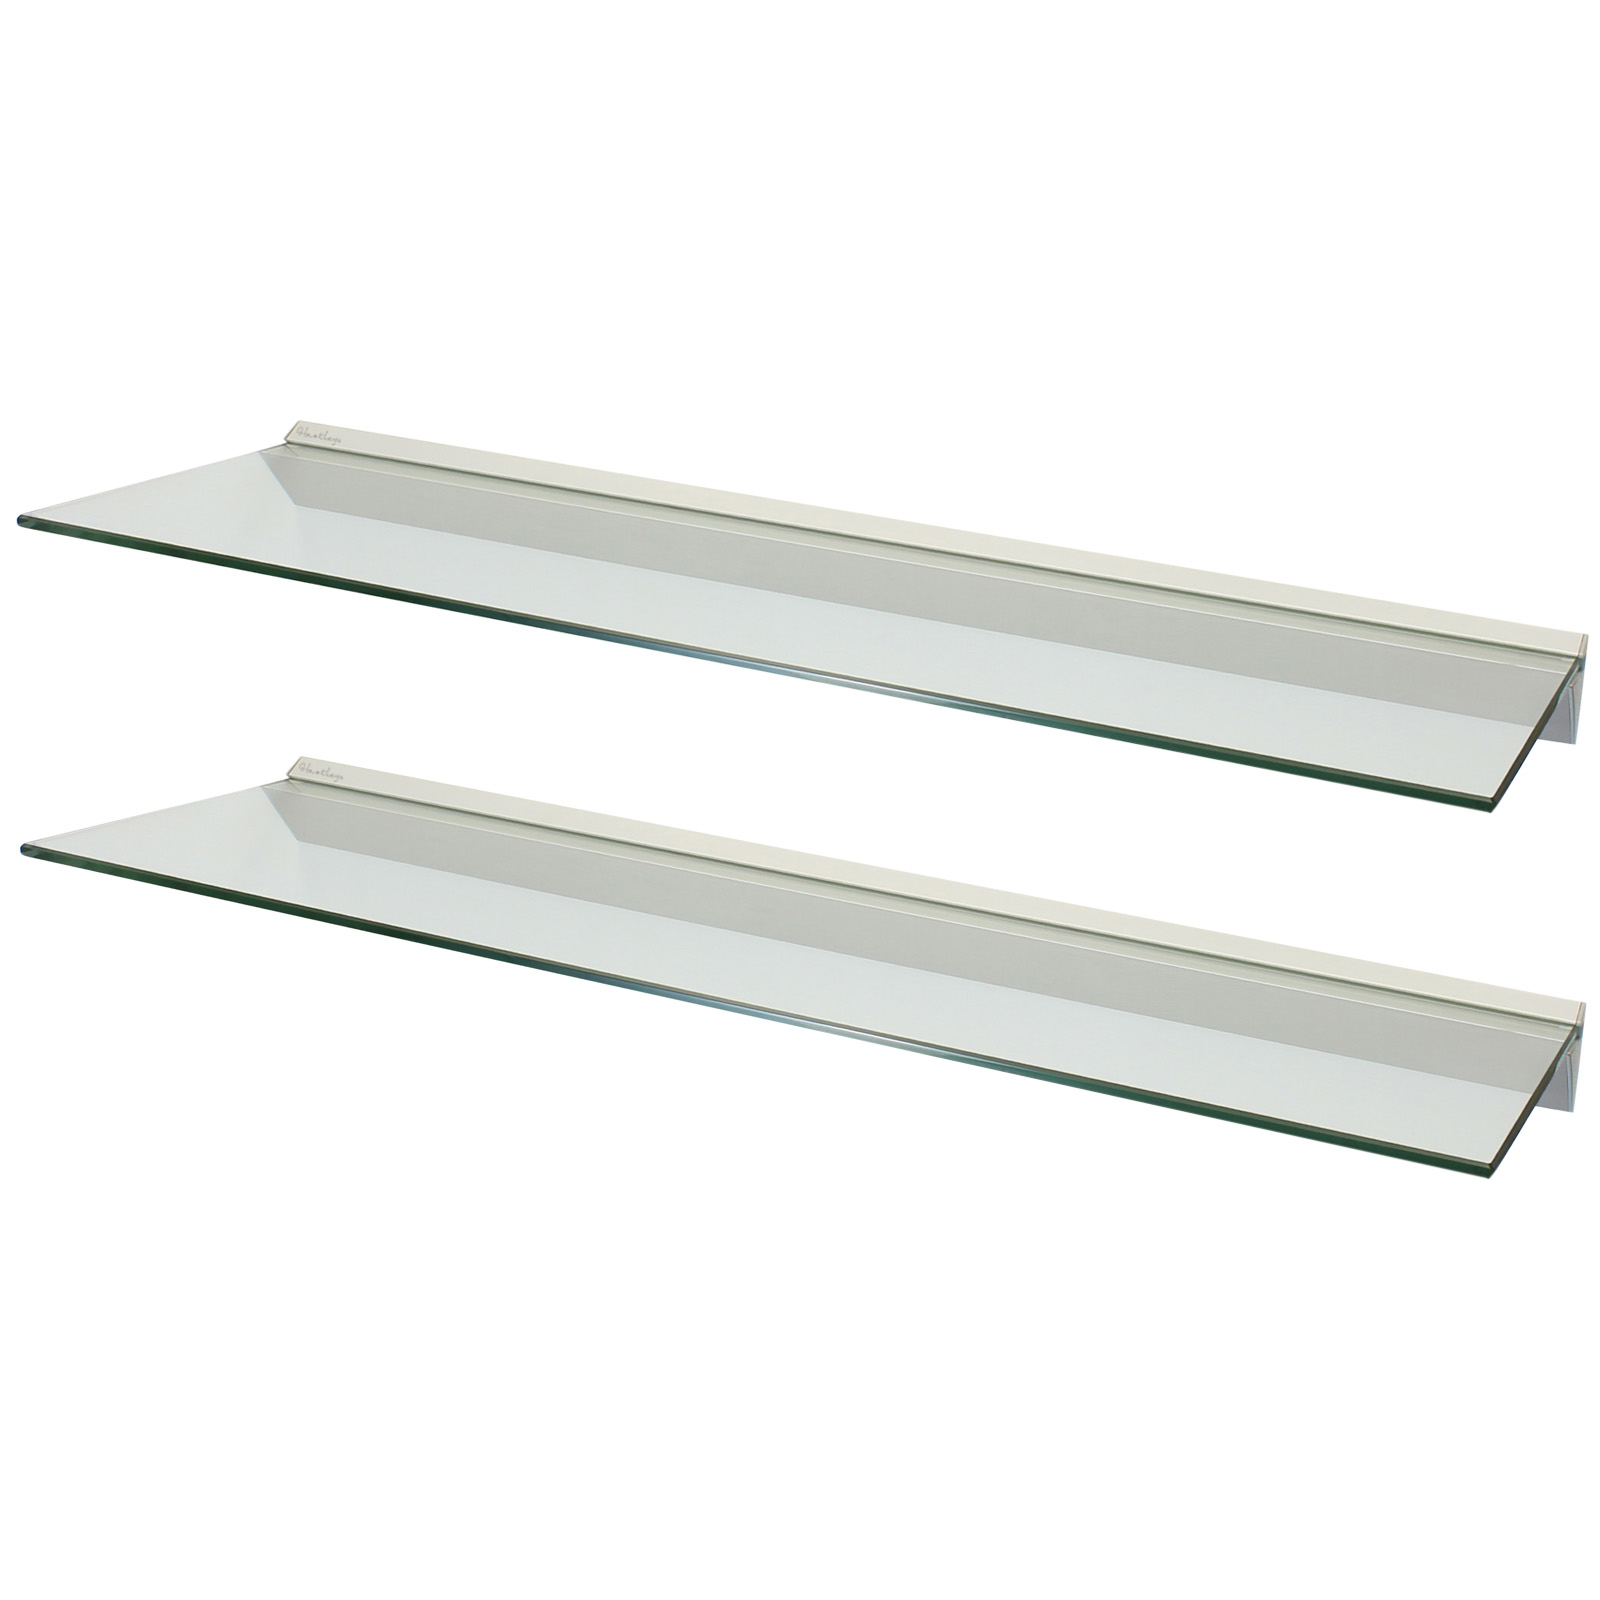 HARTLEYS PAIR 2x 100cm CLEAR FLOATING GLASS WALL SHELVES